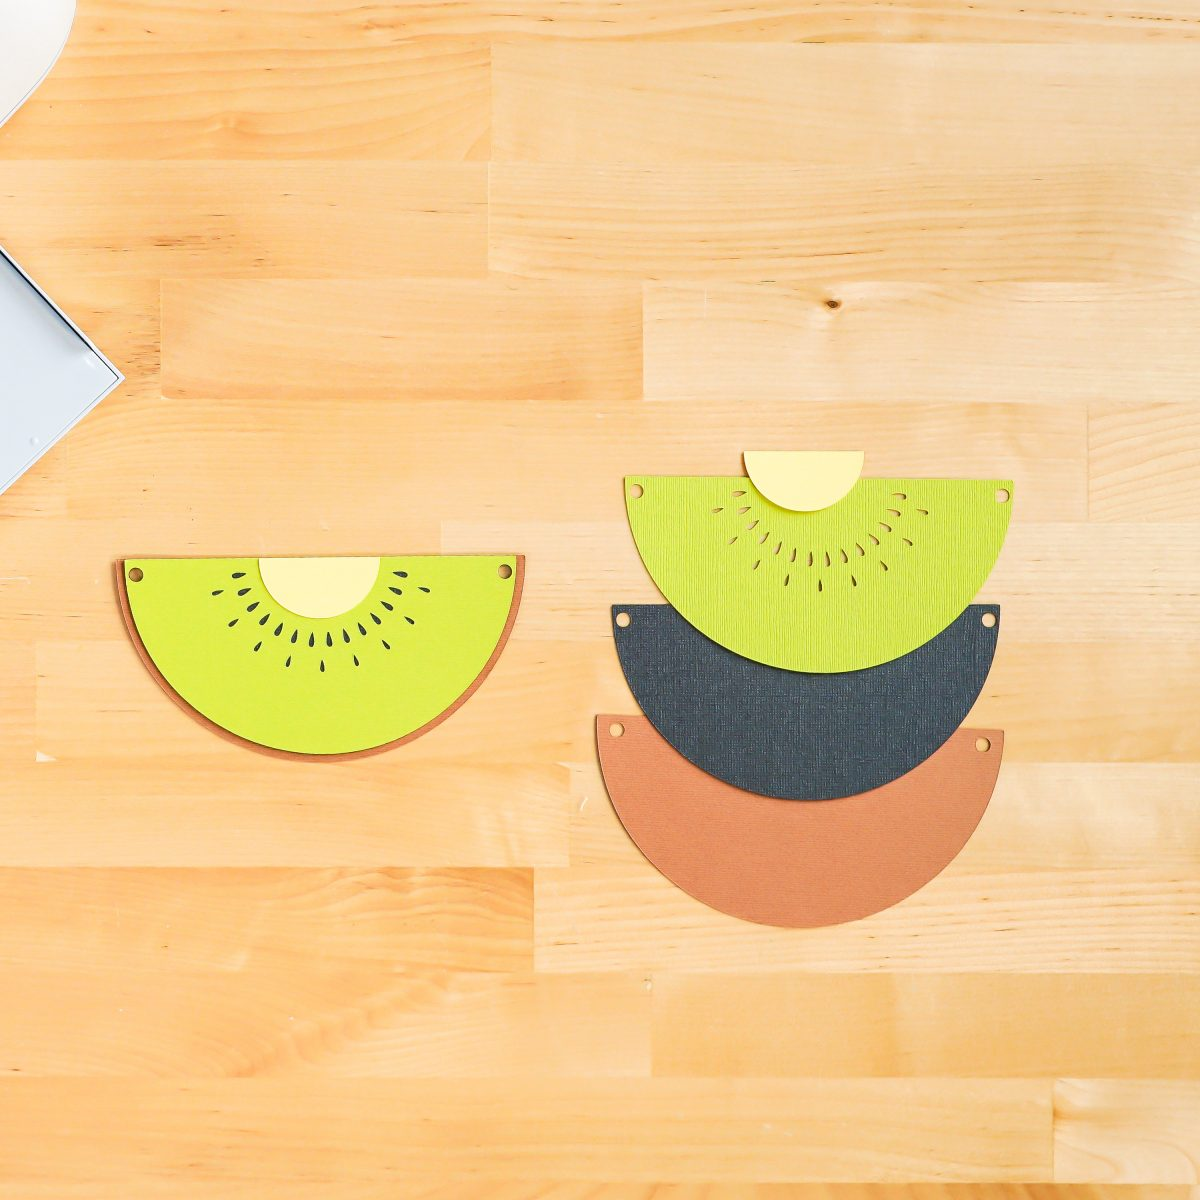 How to assemble the kiwi